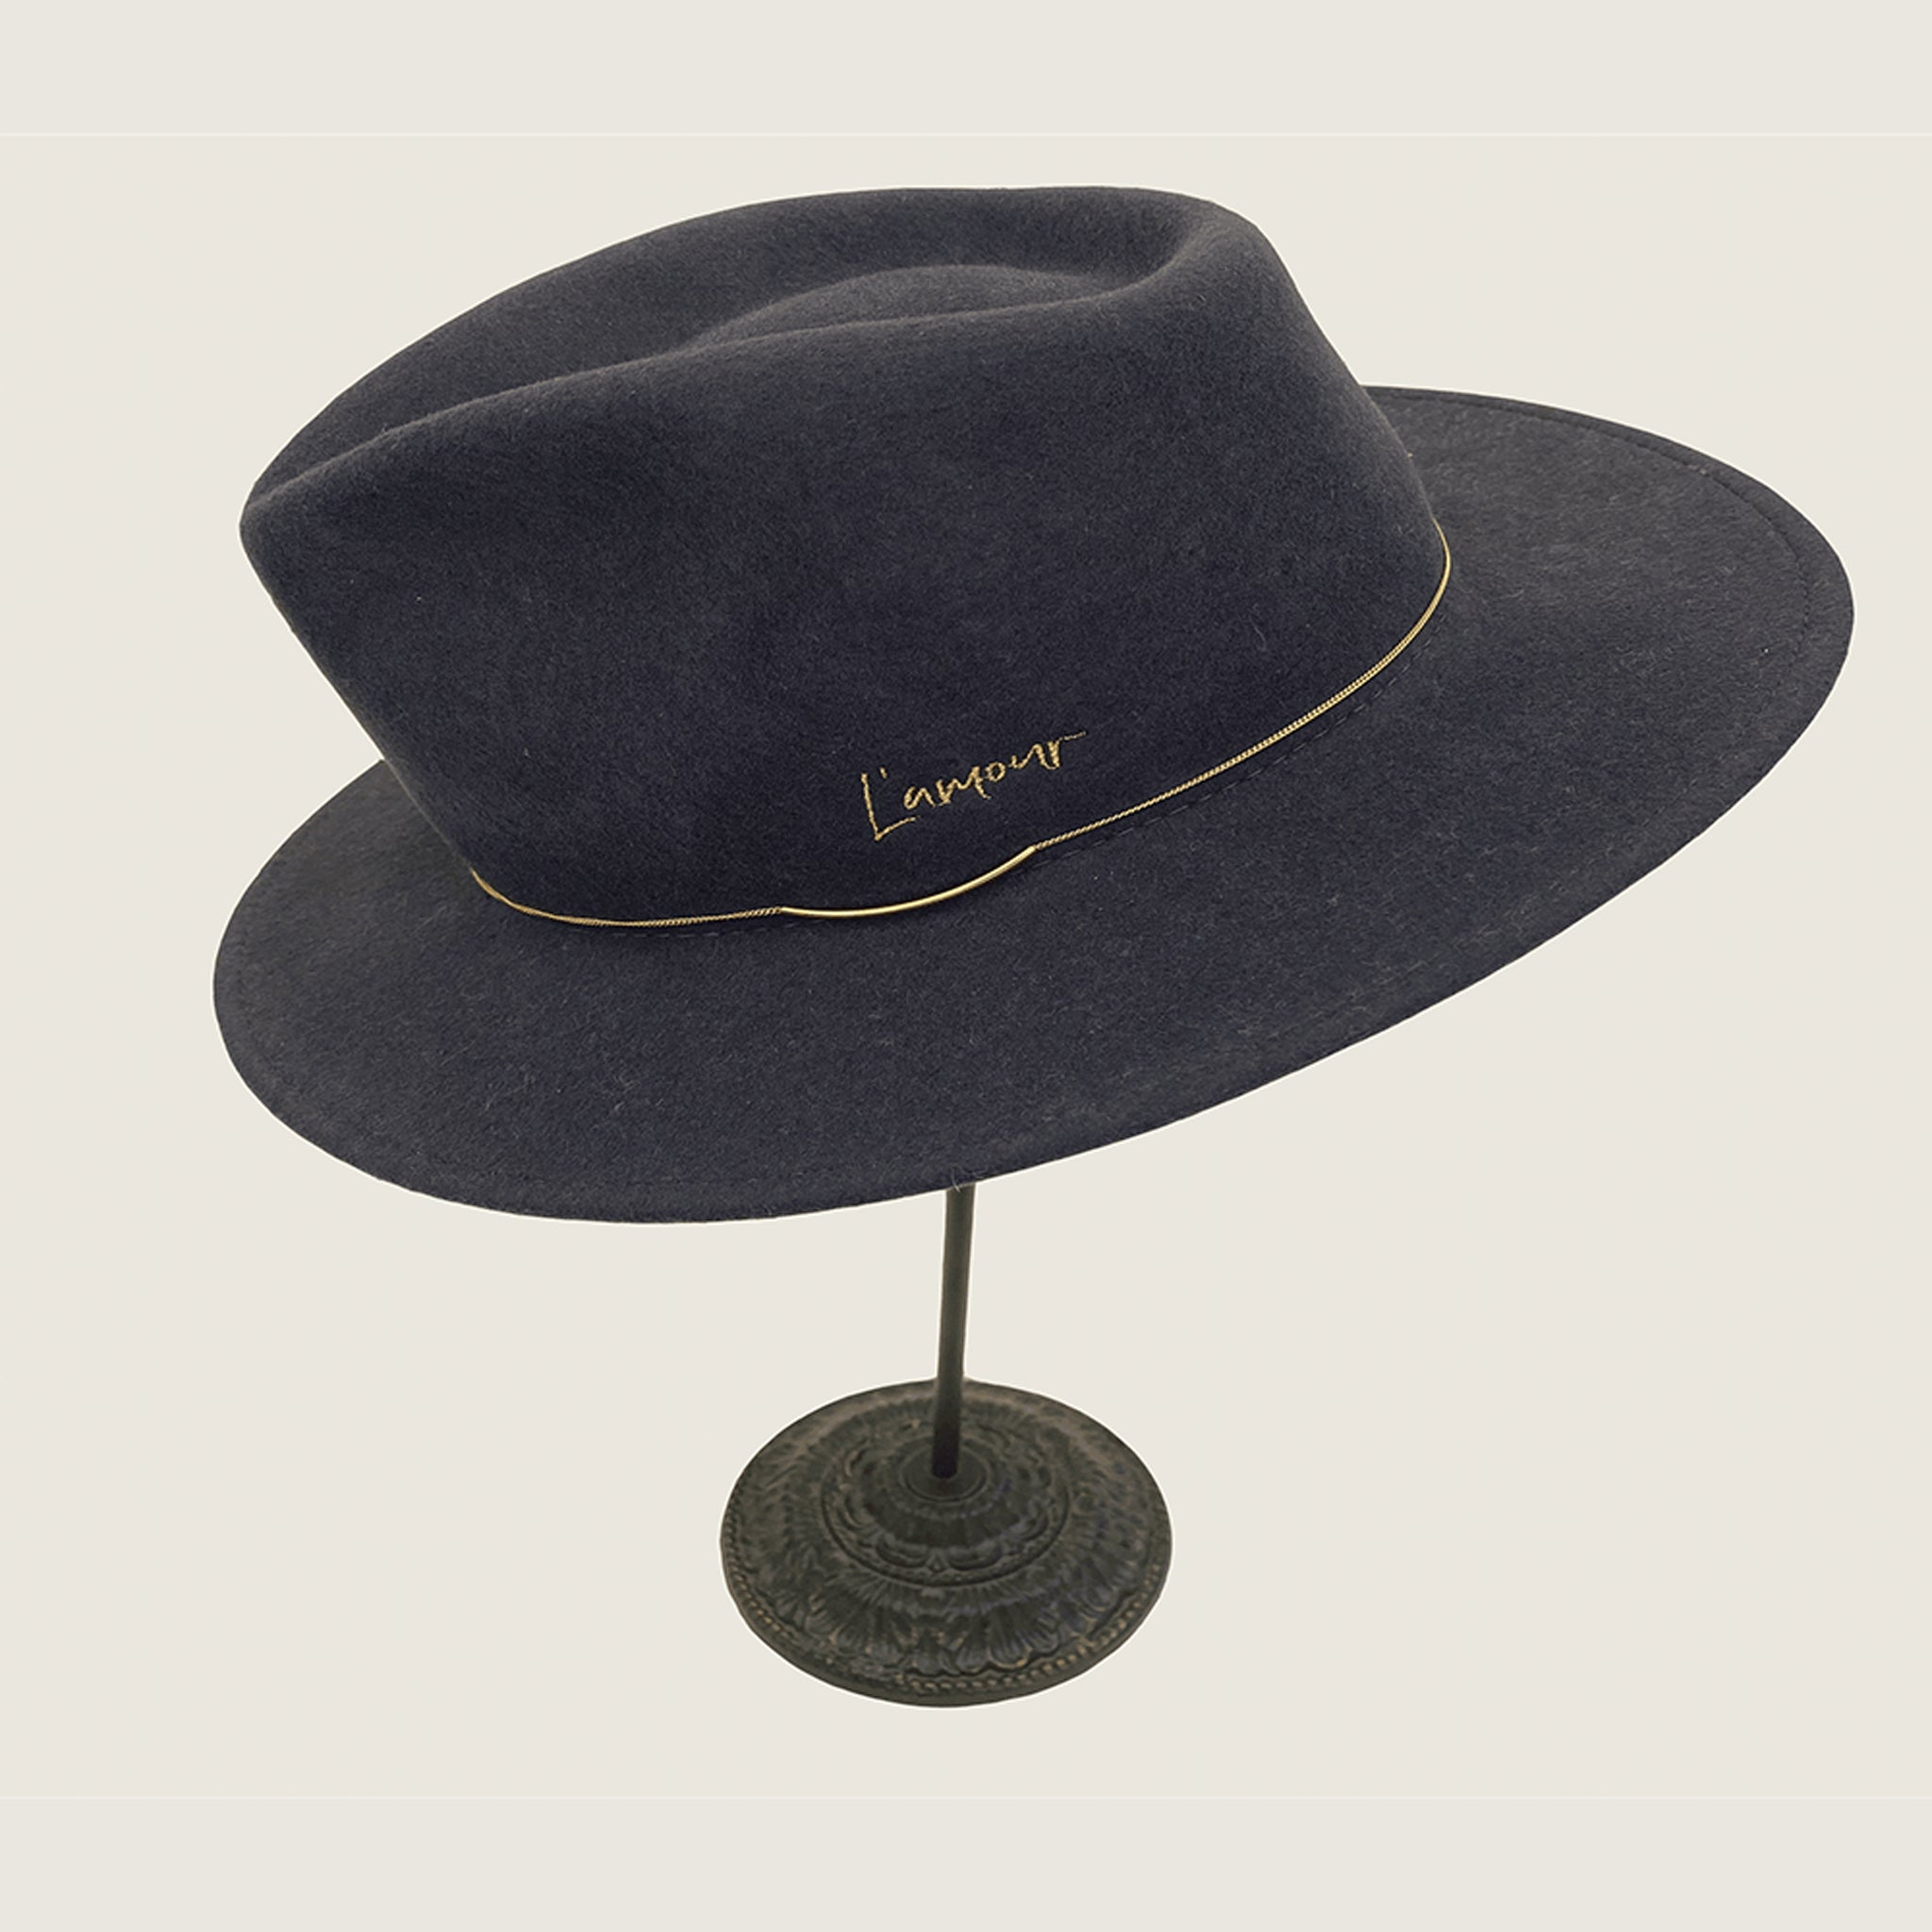 Valentin Grey Crushable L'Amour Hat - Blackbird General Store